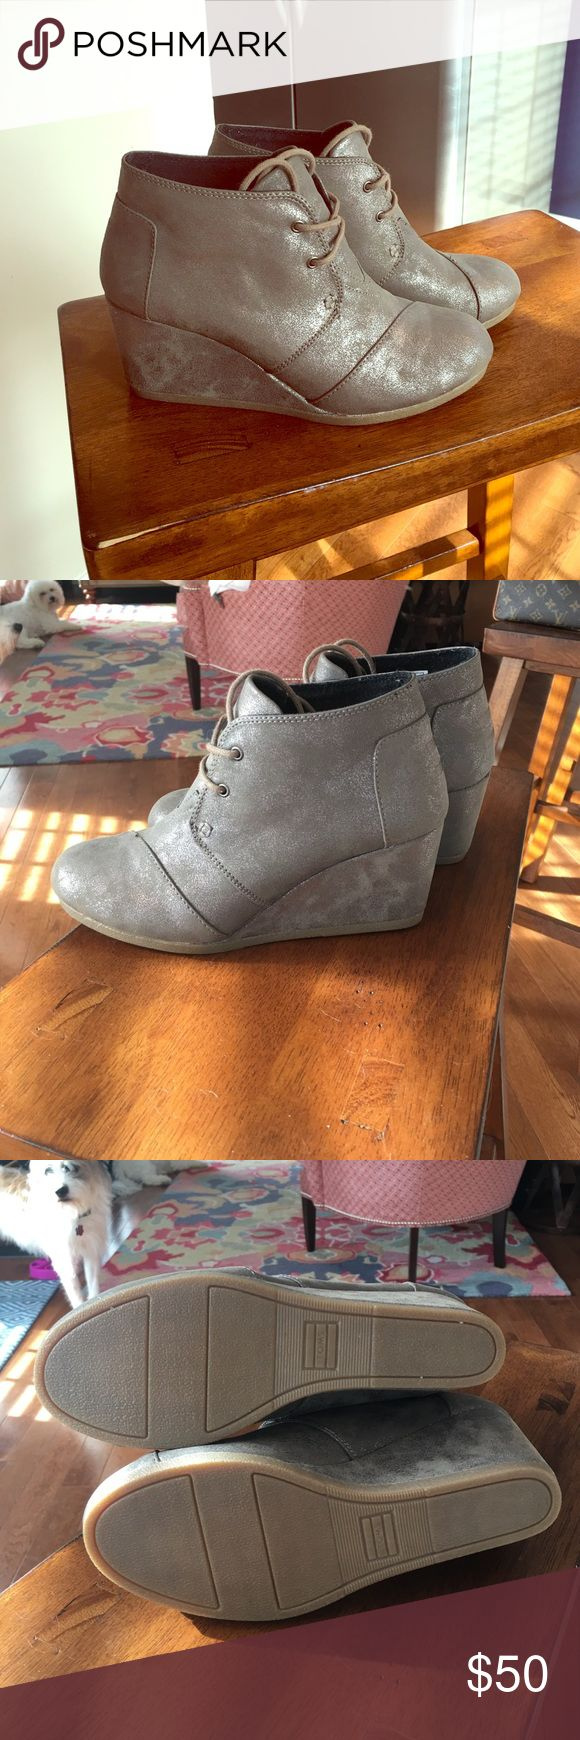 Toms desert wedge Metallic gray, worn maybe twice. Great condition. TOMS Shoes Wedges